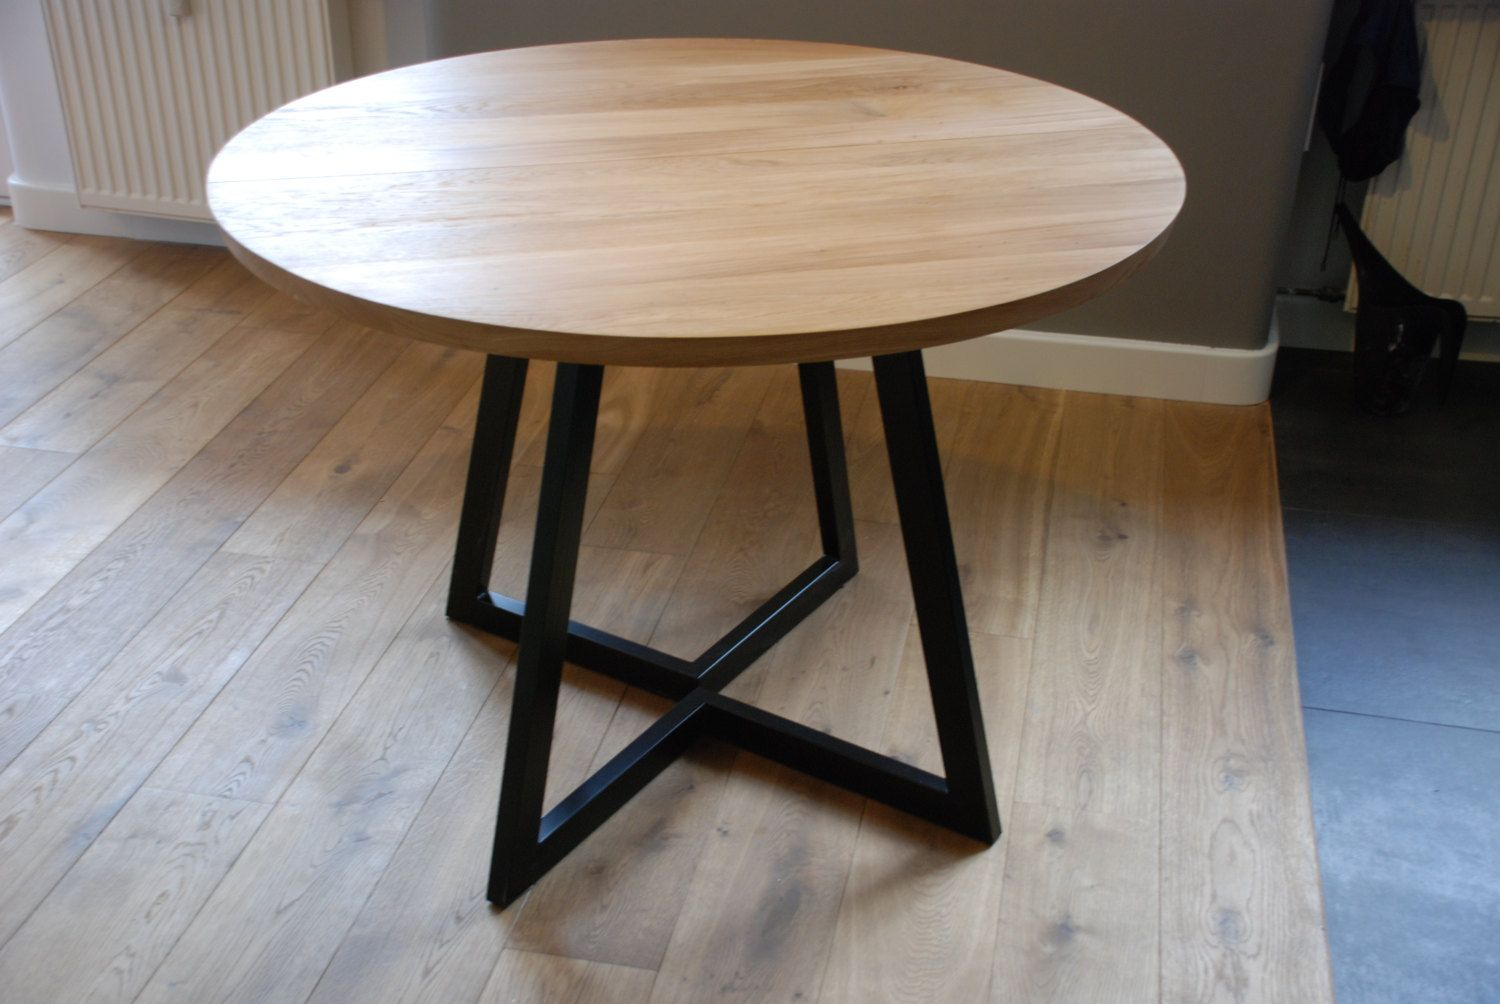 Extendable Round Table Modern Design Steel And Timber Pe De Mesa